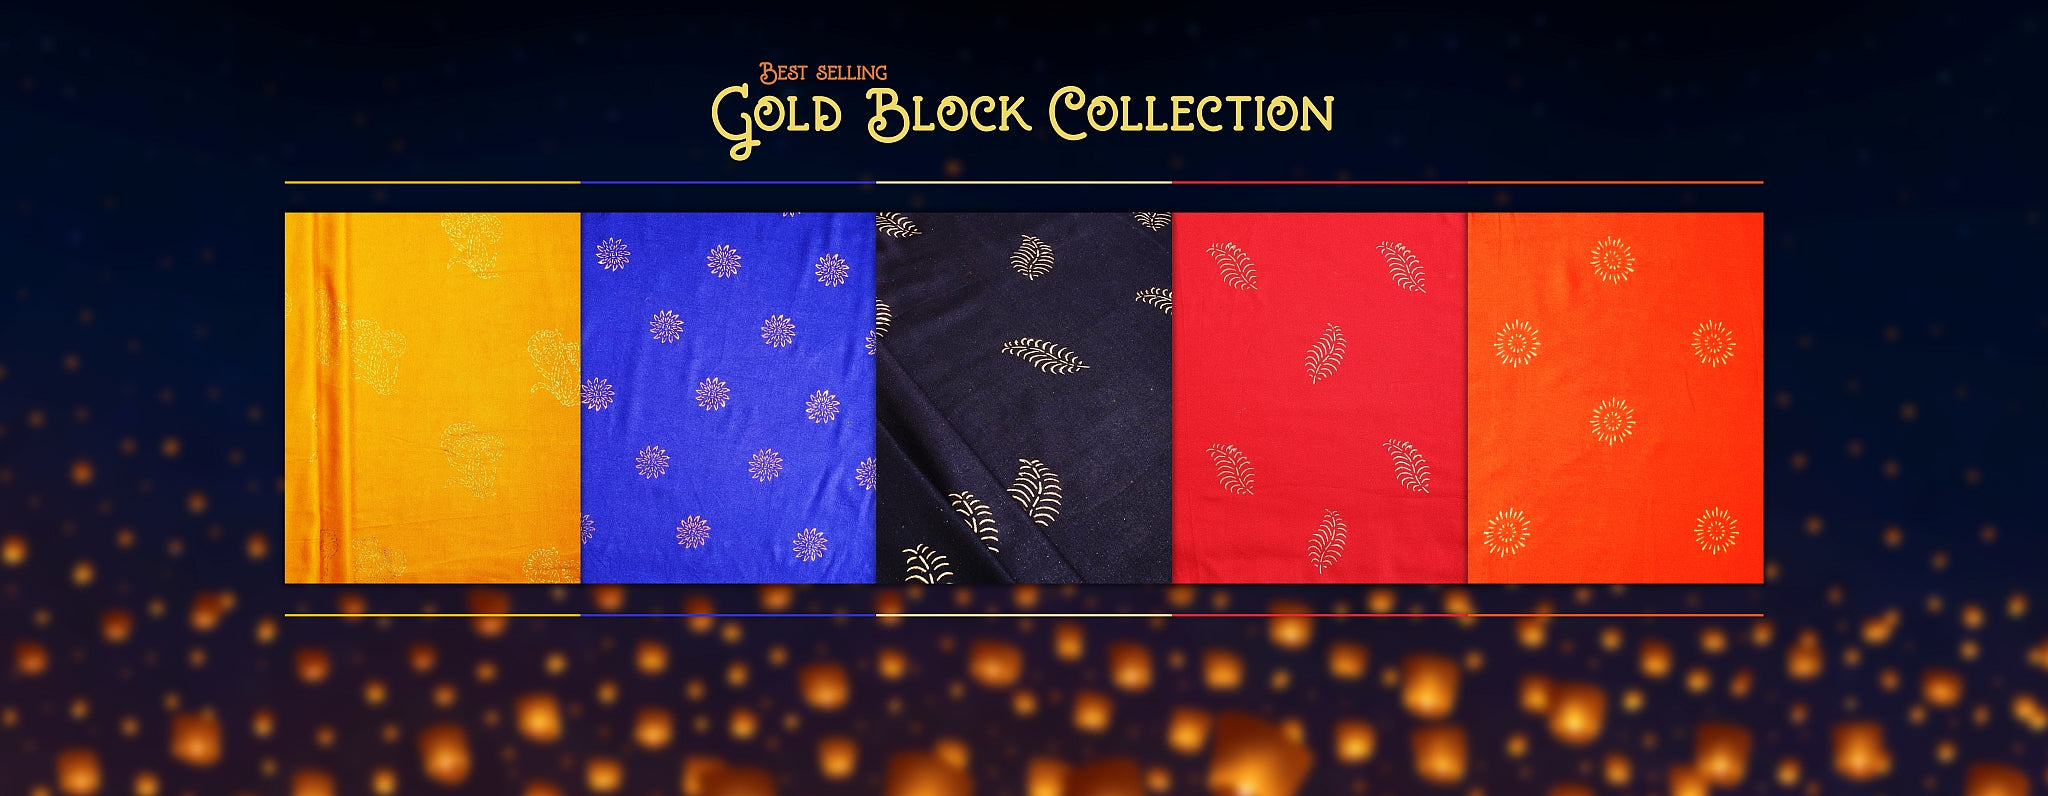 Gold Block Collection